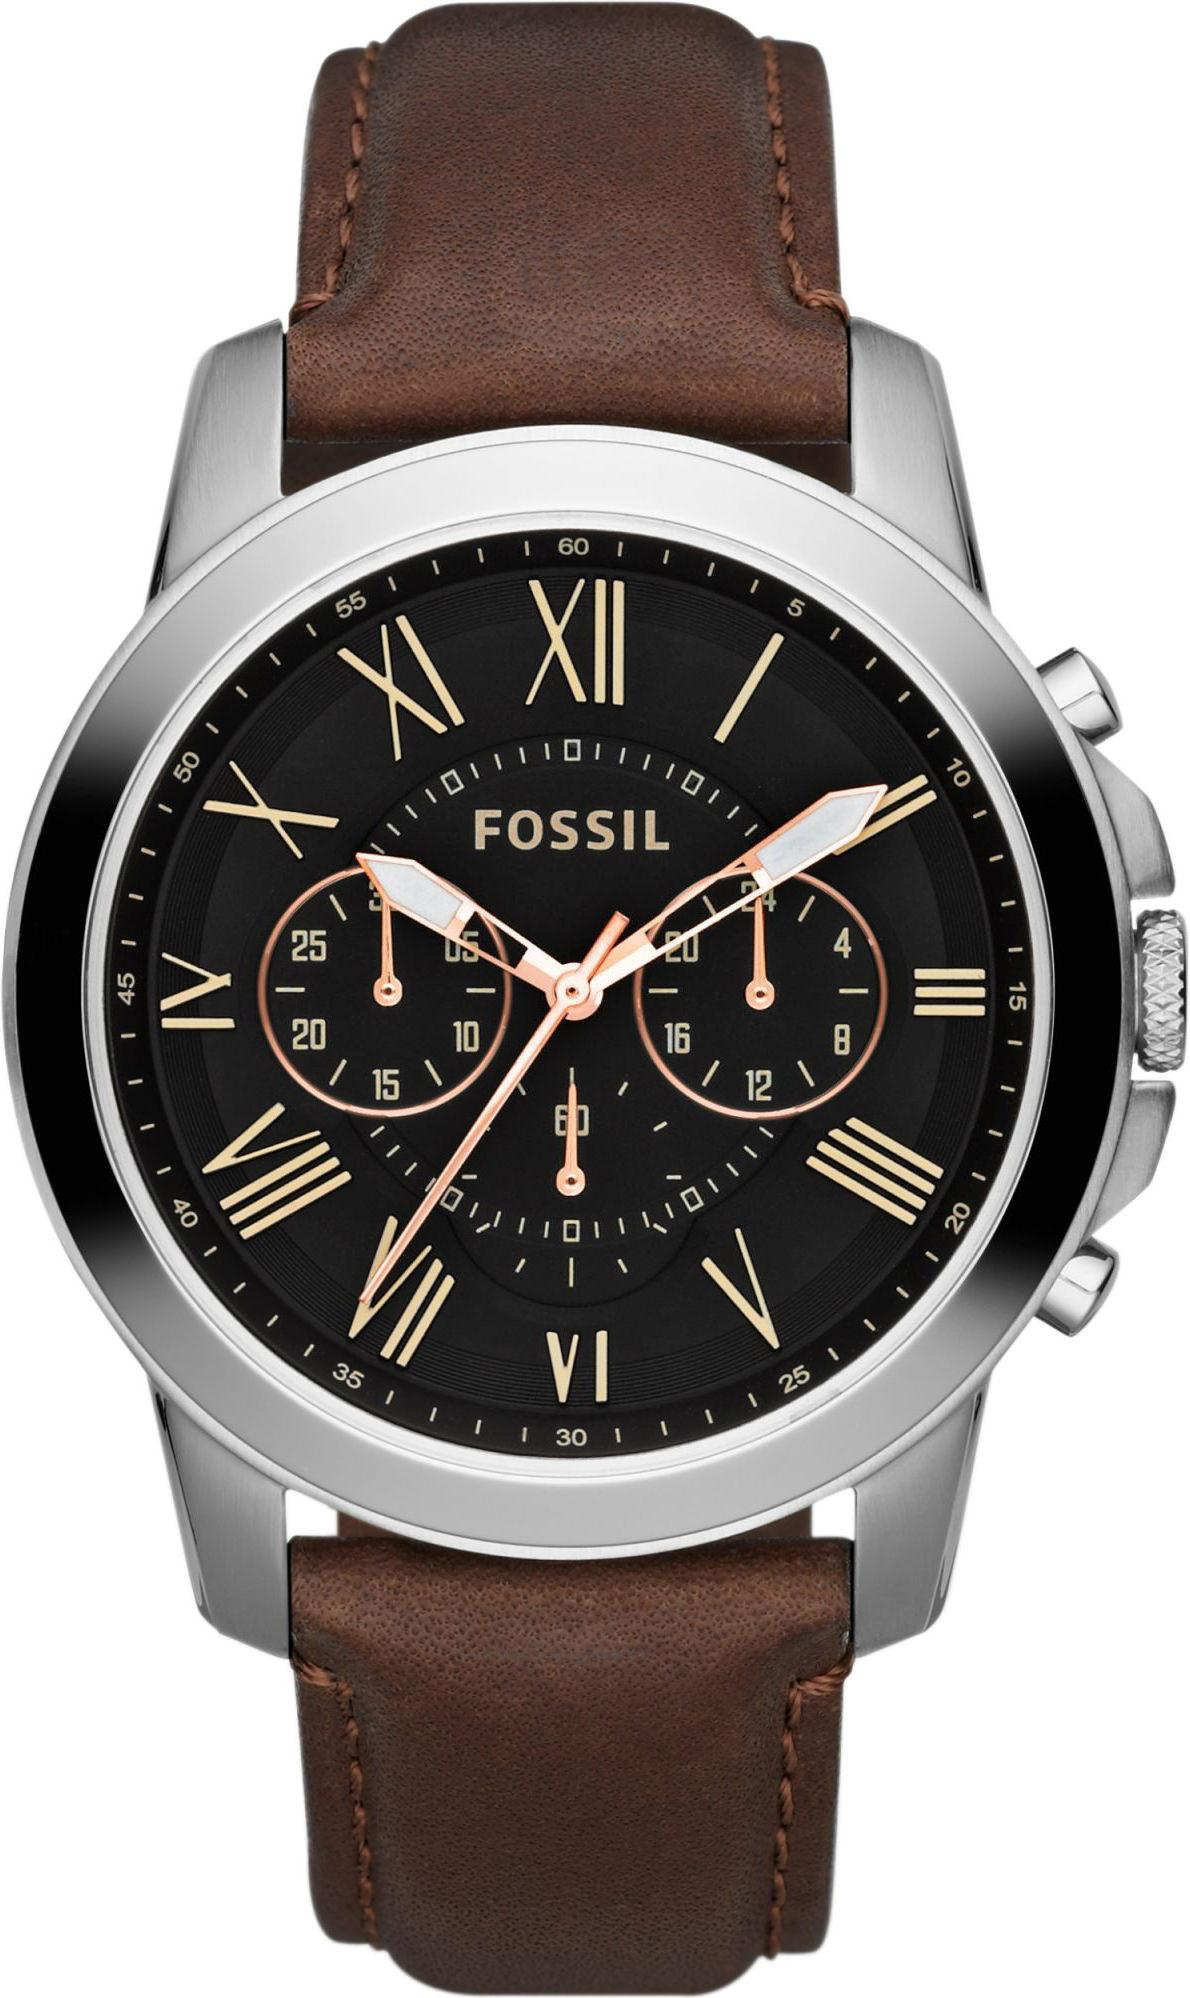 e3c48361f34 Fossil Philippines - Fossil Watches for sale - prices   reviews